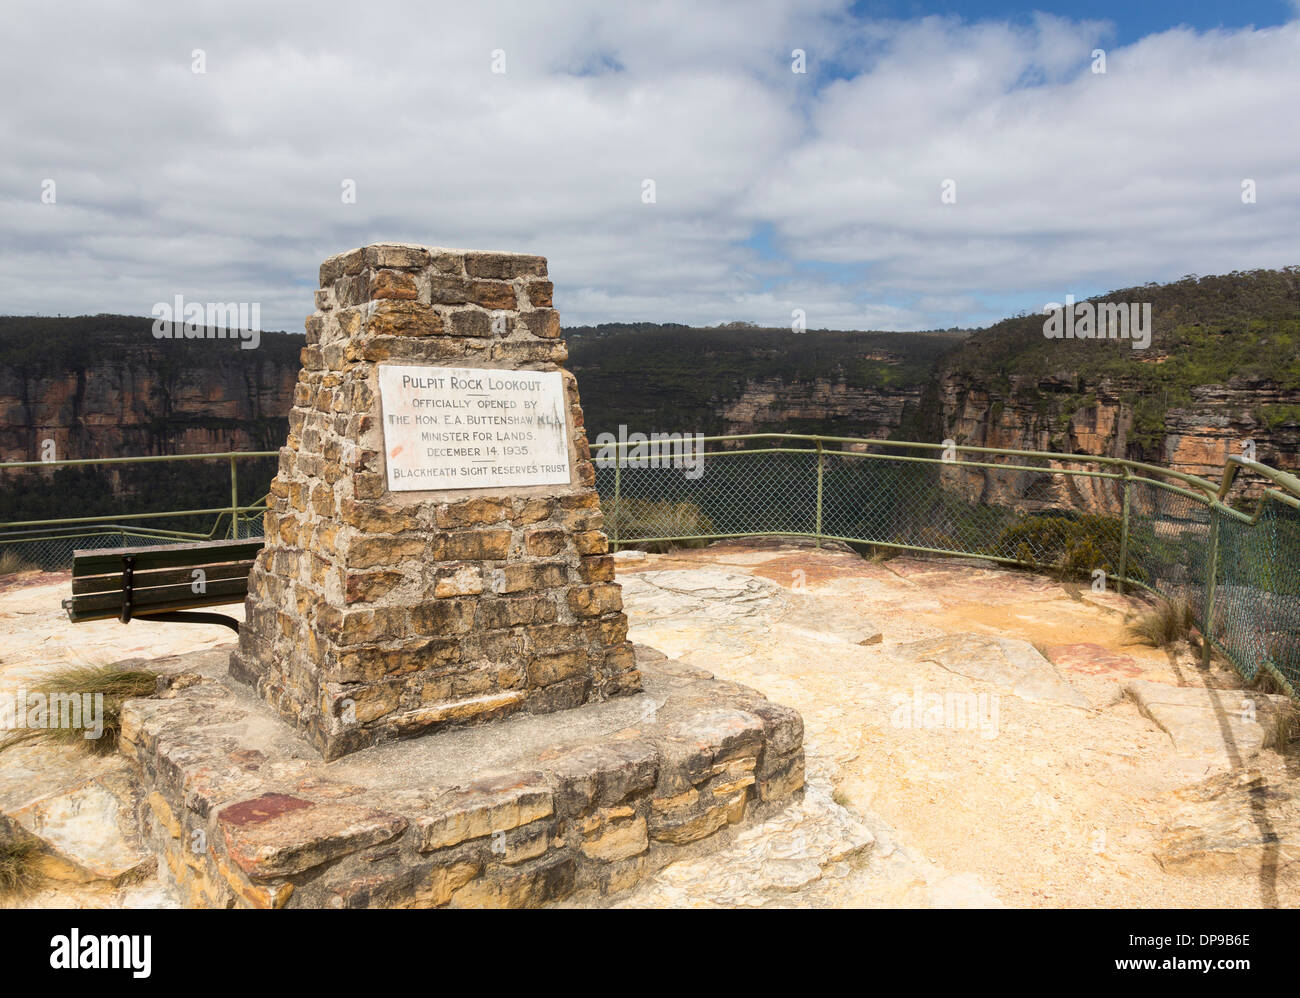 Pulpit Rock Lookout viewpoint overlooking the Grose Valley, Blue Mountains National Park, New South Wales, Australiaa - Stock Image